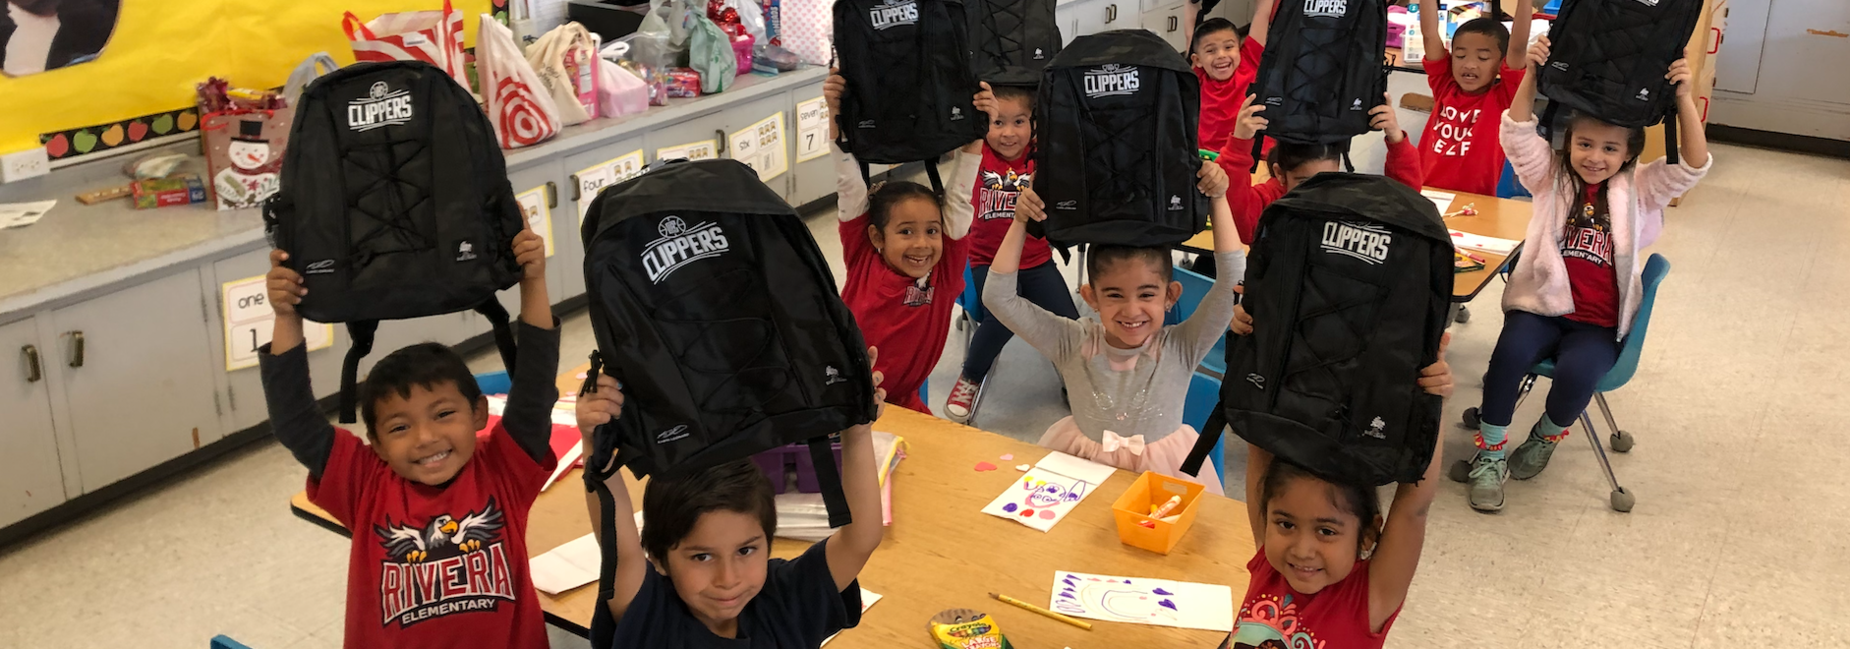 Thank you to the Clippers Foundation for our backpacks!